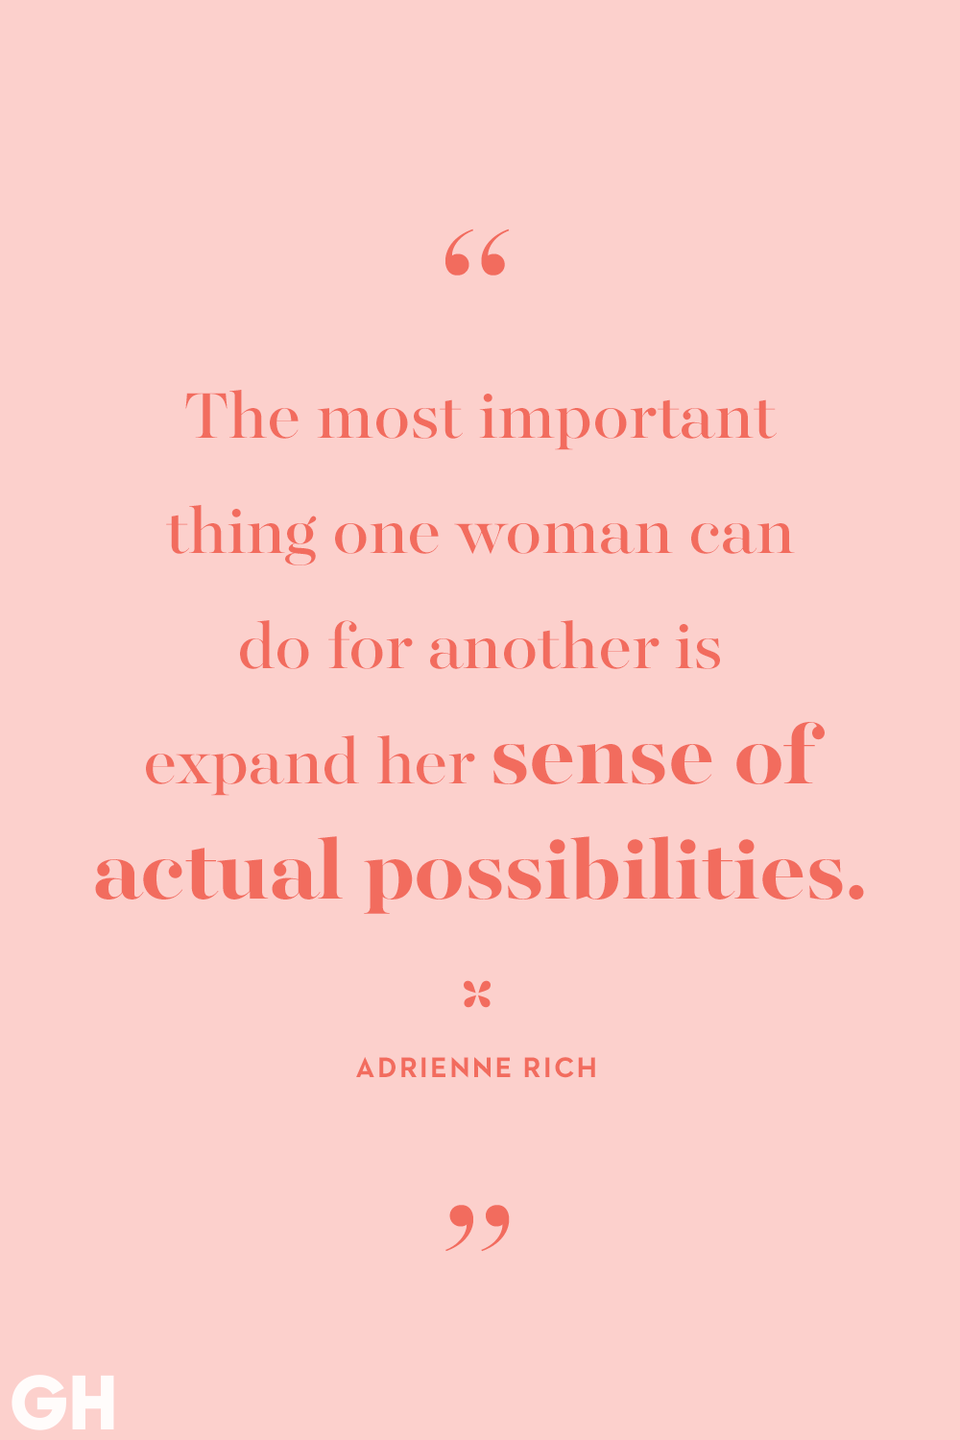 <p>The most important thing one woman can do for another is expand her sense of actual possibilities.</p>